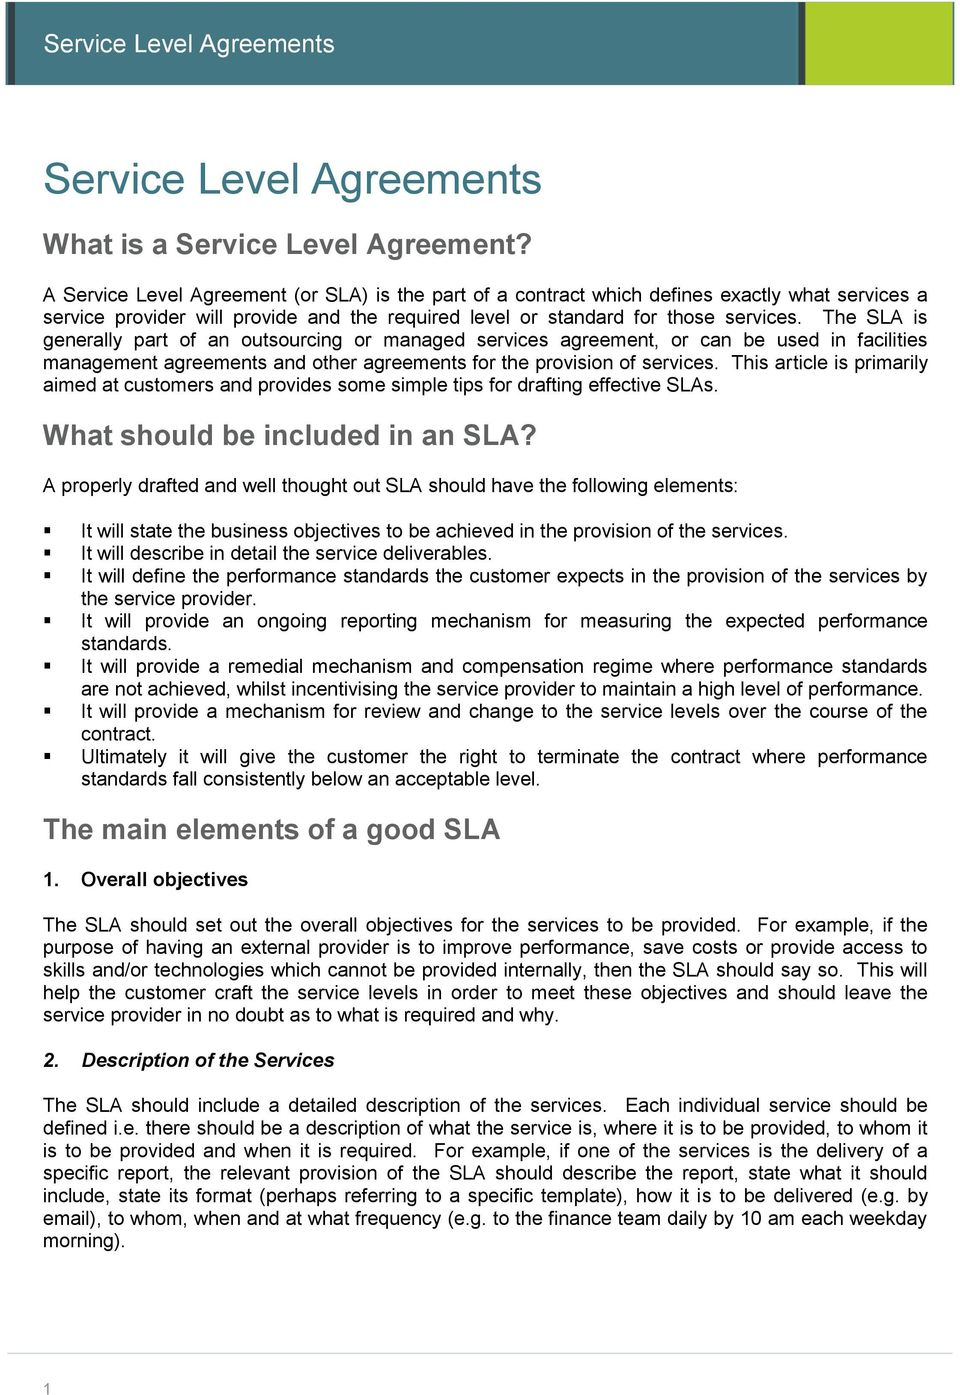 Service Level Agreements Pdf